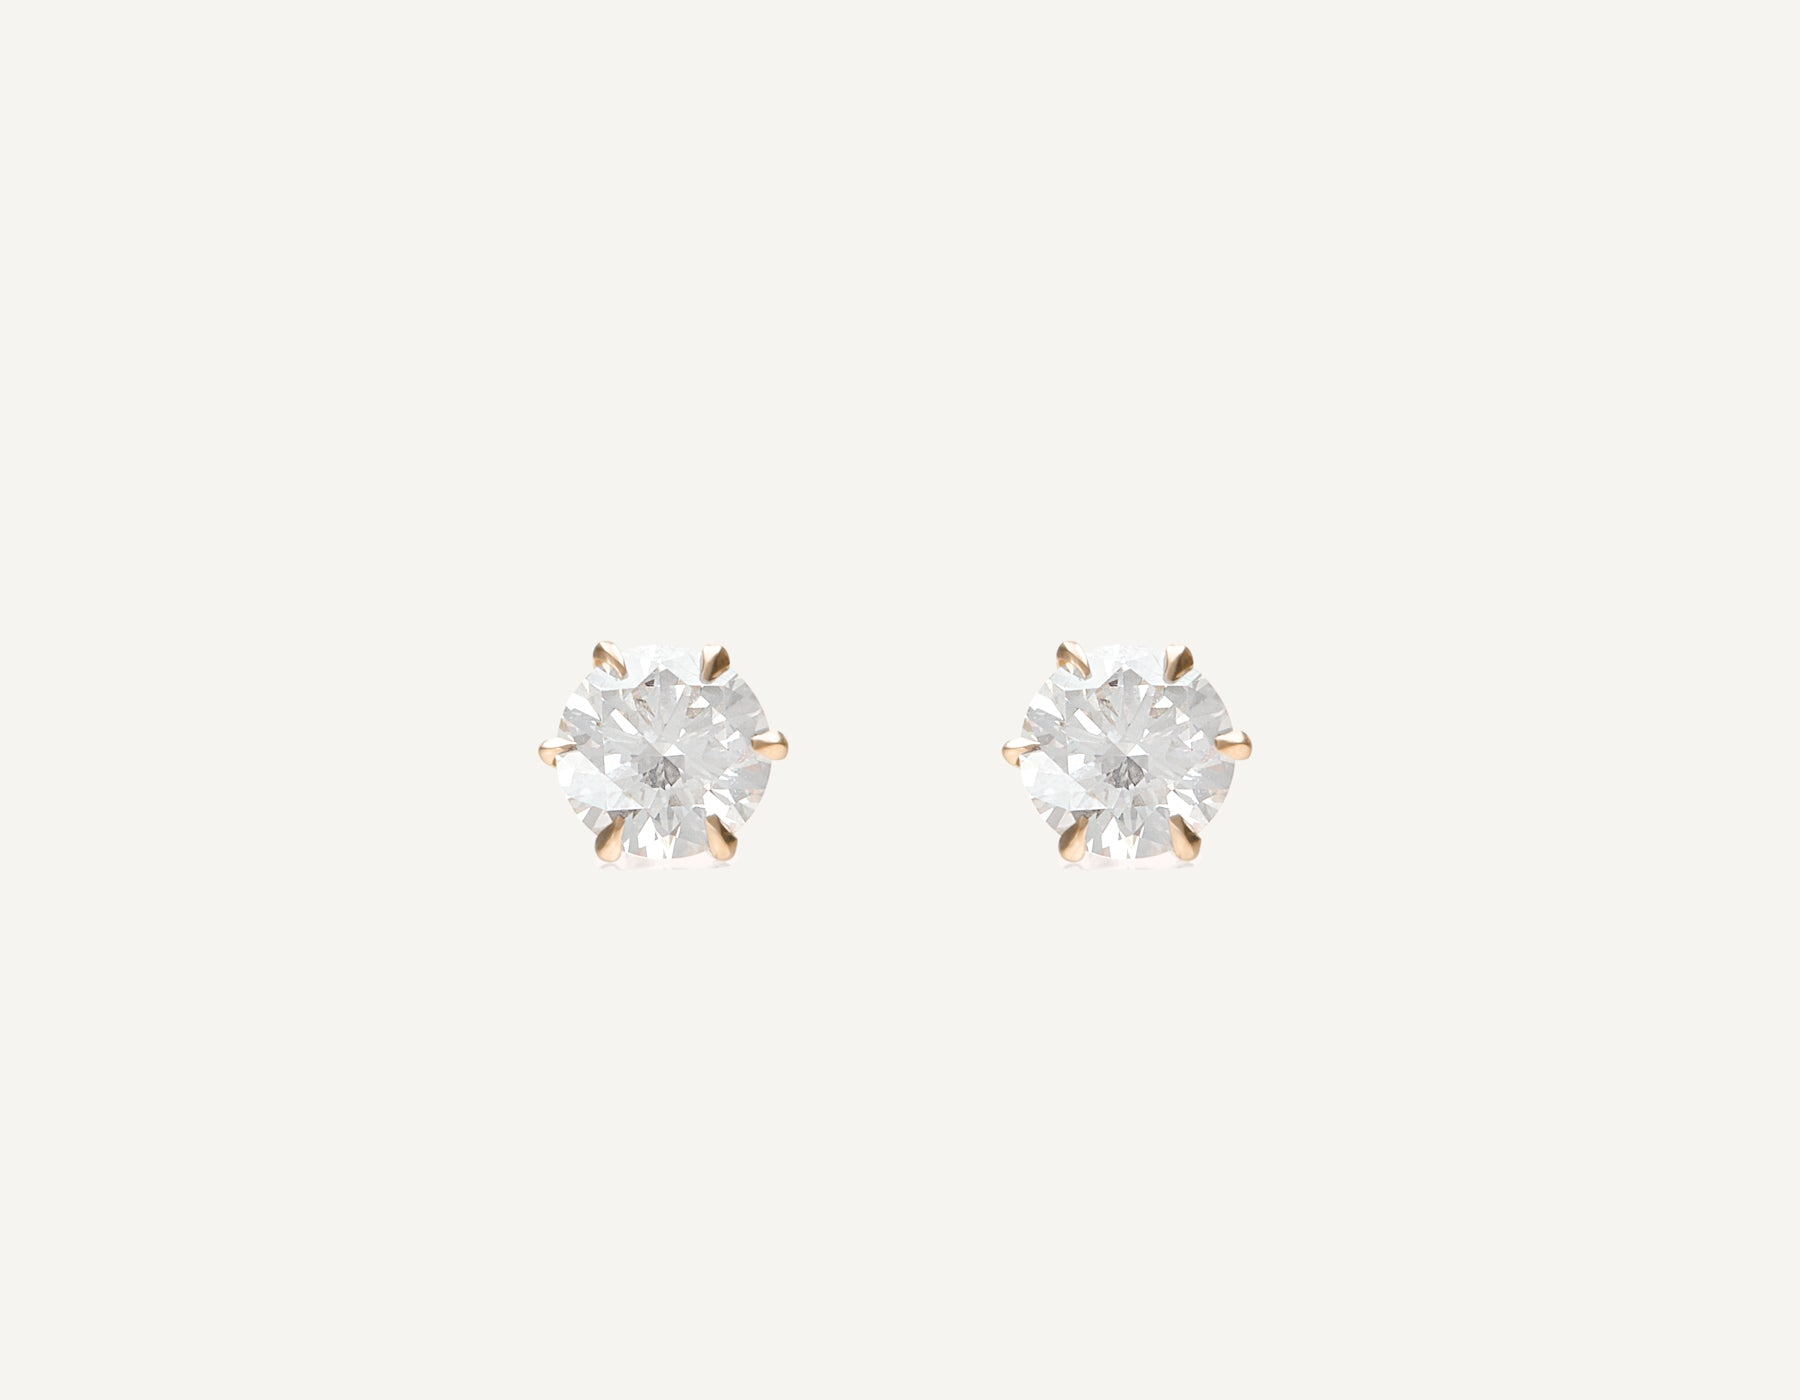 simple classic 18k solid gold 1.0 ct Round Brilliant Diamond Studs earring by Vrai and Oro, 18K Rose Gold